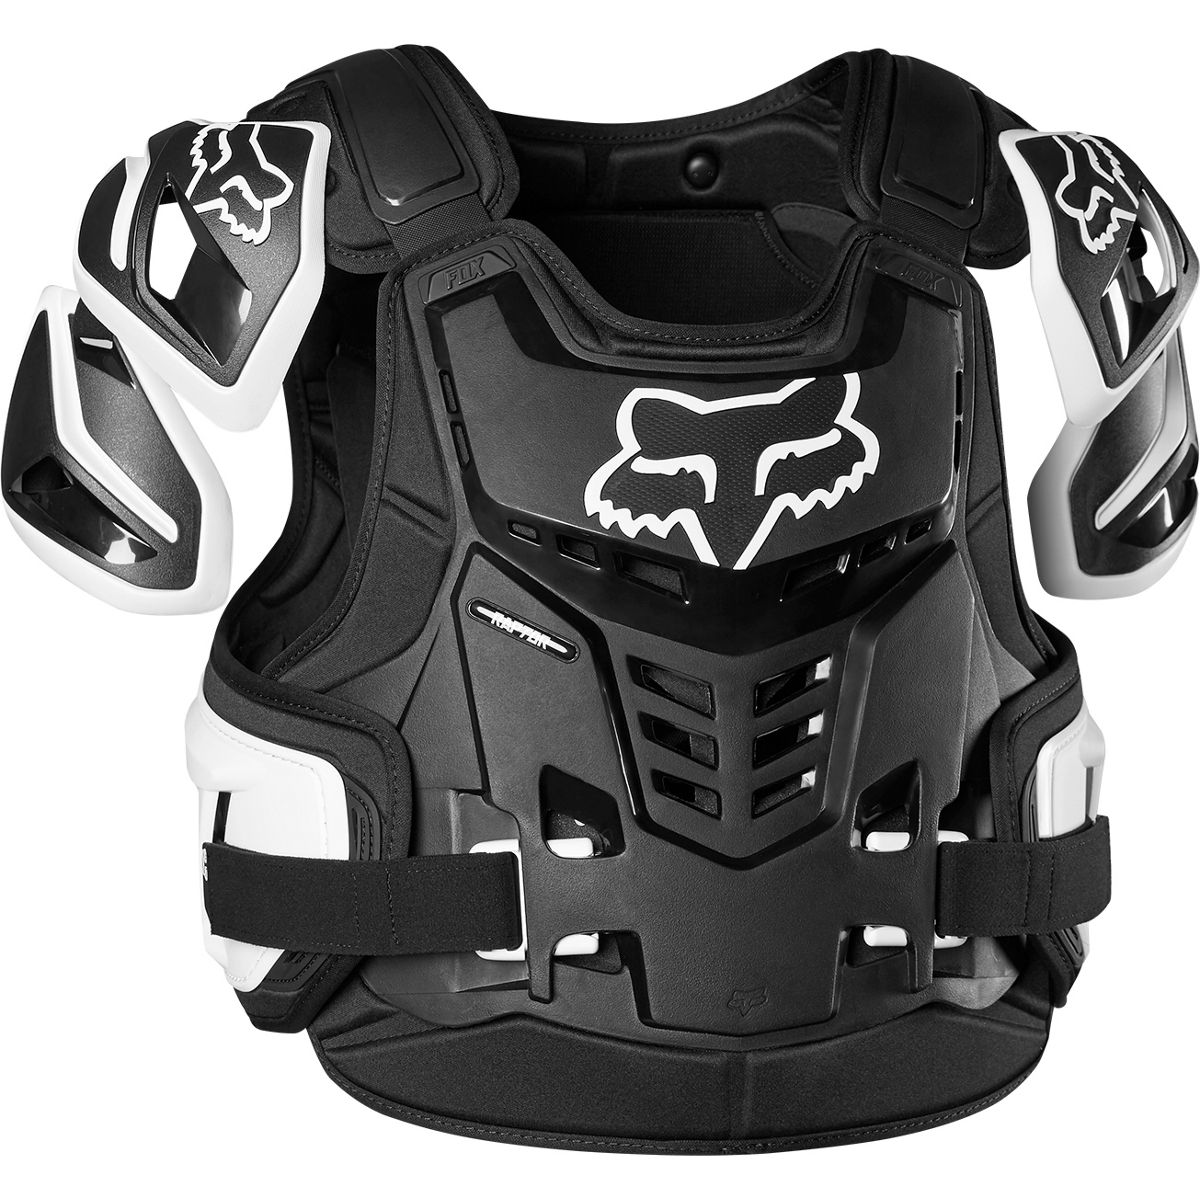 24818-018 Fox Racing Raptor Protection Vest Black White Brustpanzer Pare-Pierres de Protection Harnas Bescherming